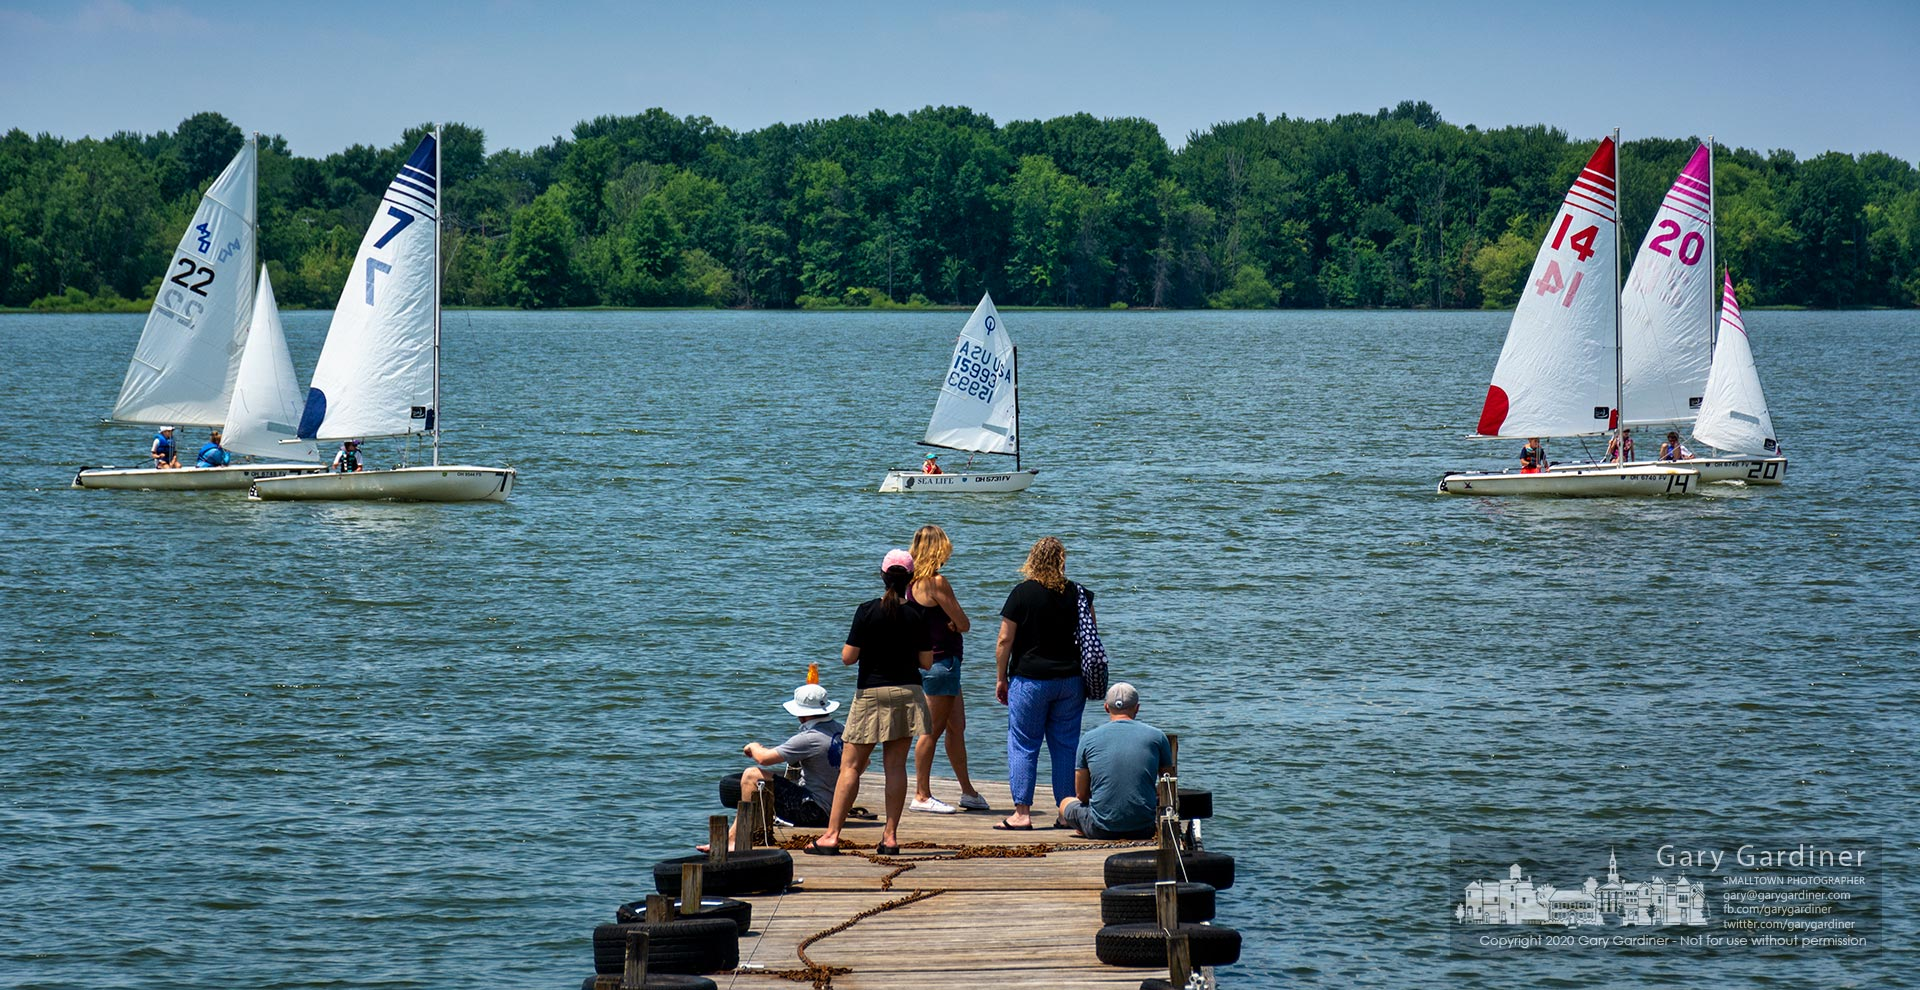 Parents watch from the end of a dock at Hoover Sailing Club as their children approach a turn bouy on Hoover Reservoir during classes Friday afternoon. My Final Photo for July 3, 2020.